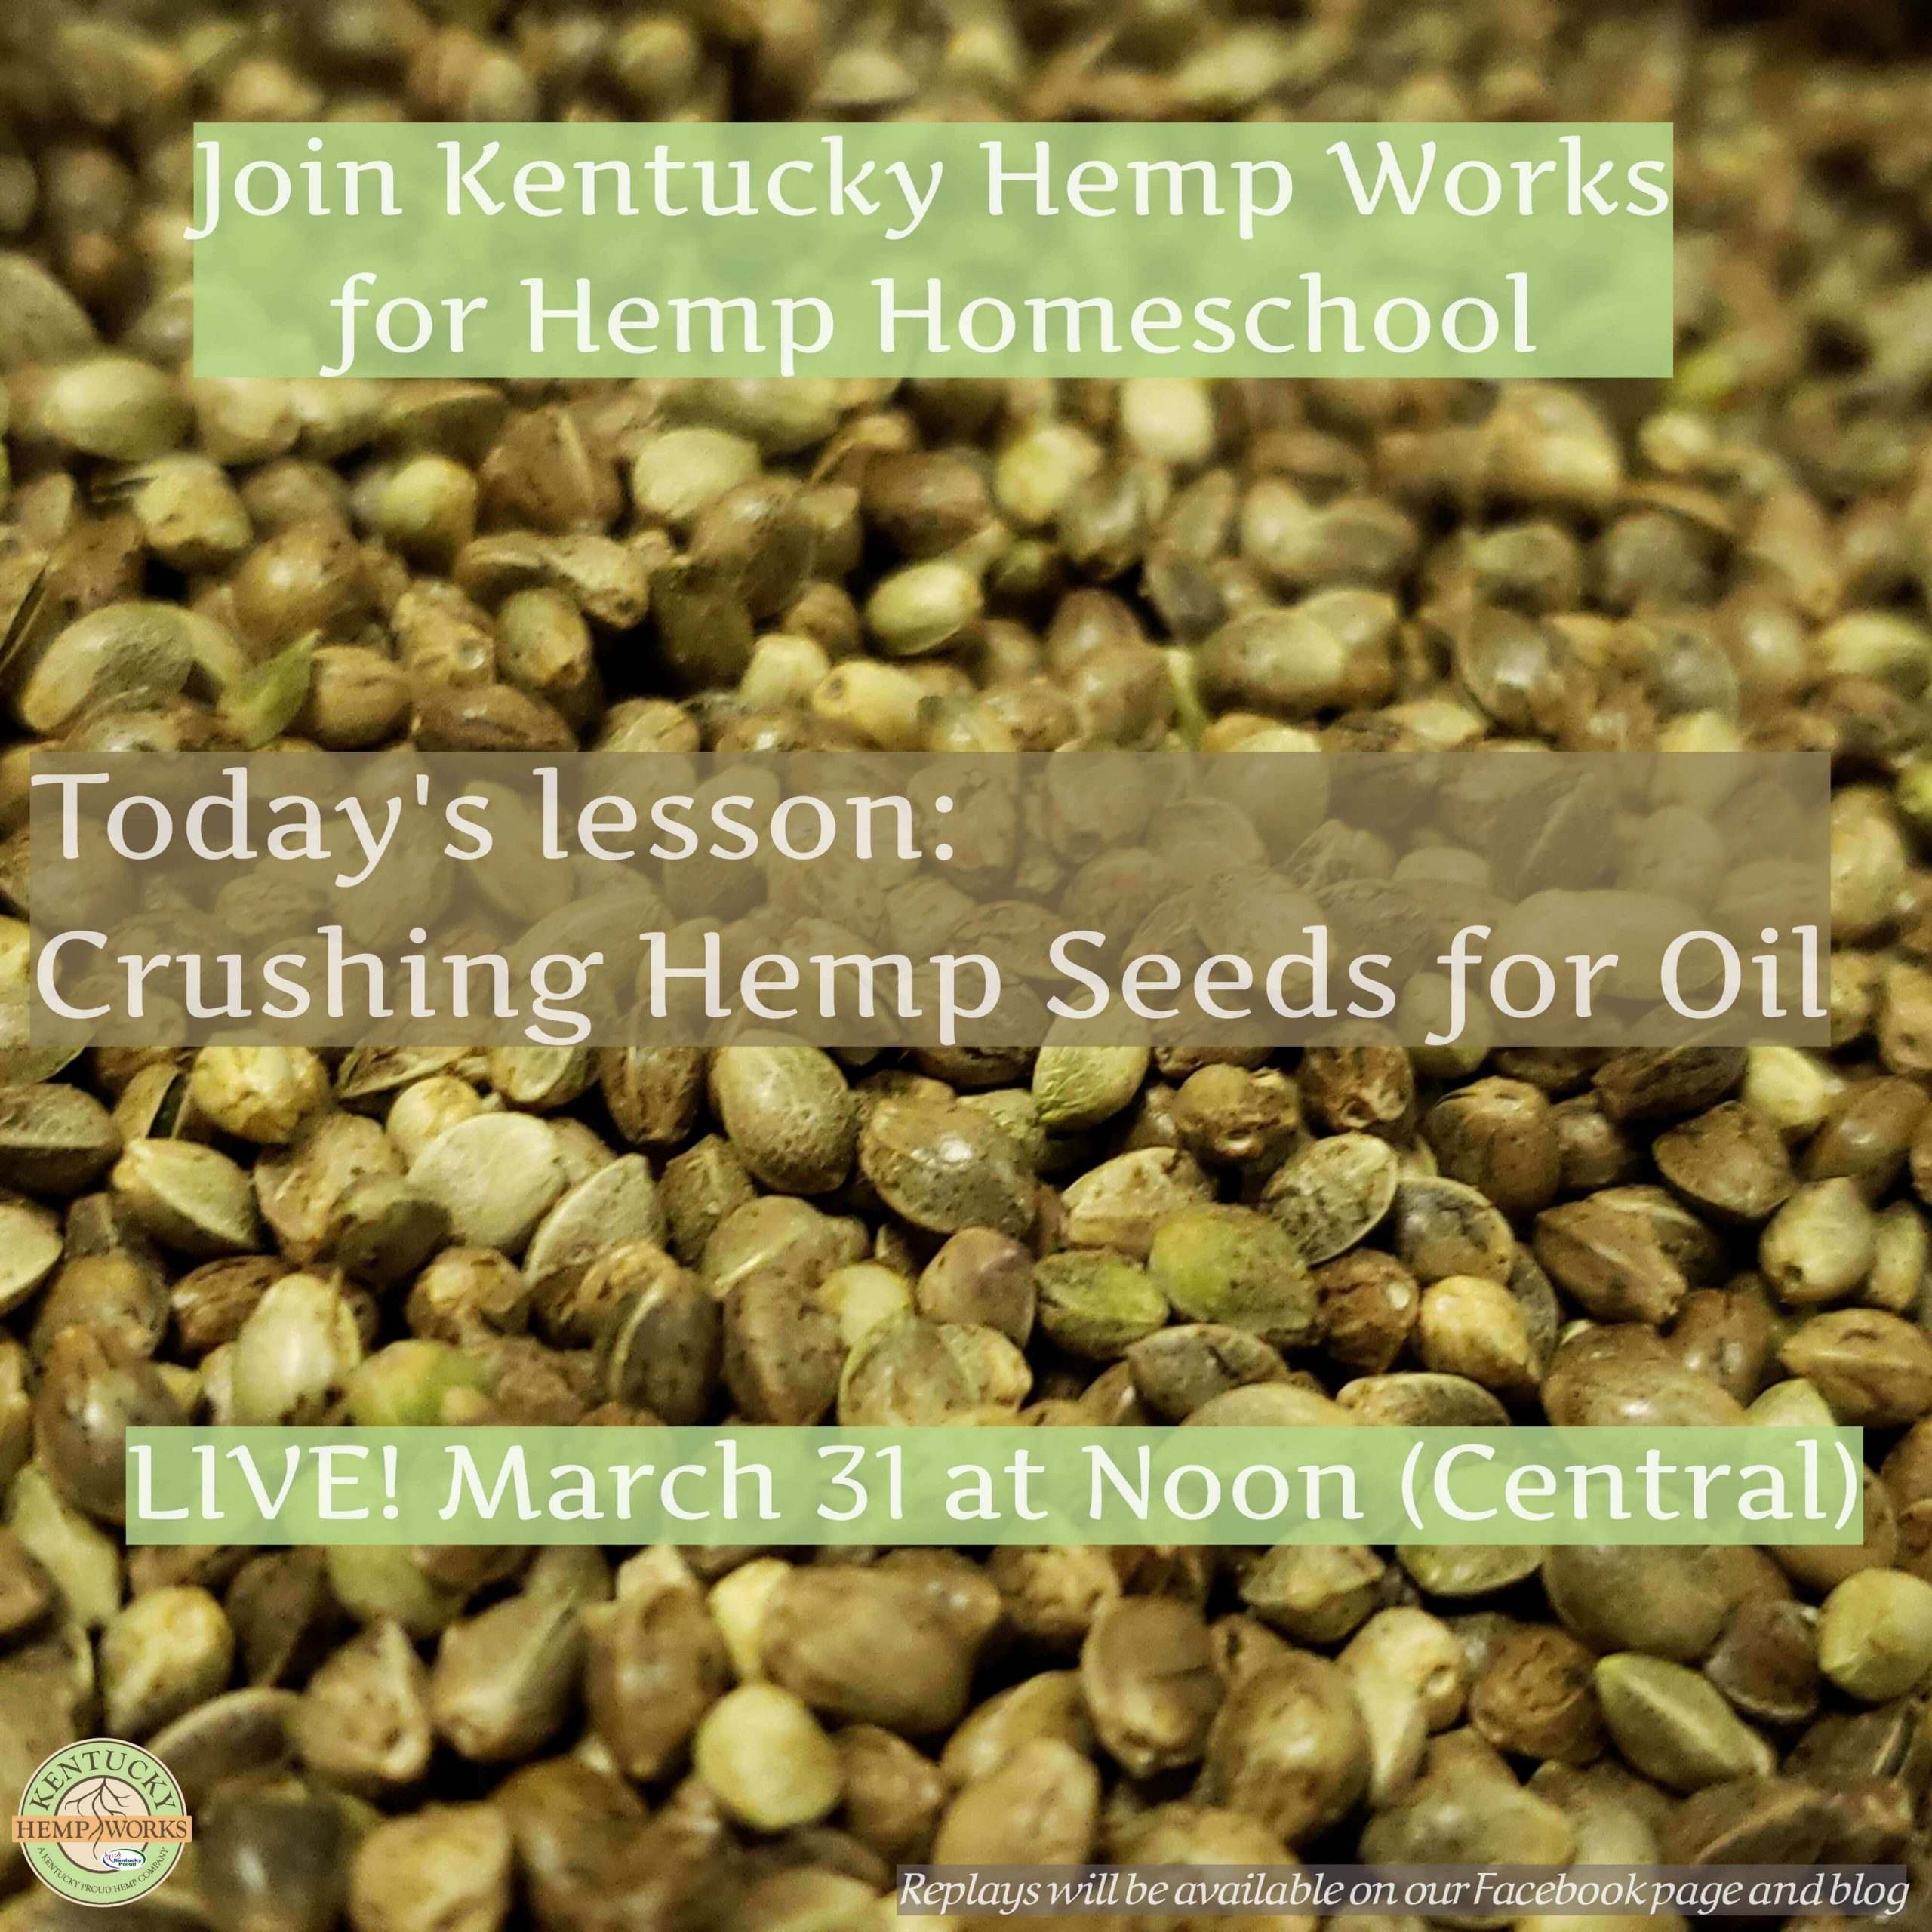 Hemp Homeschool - Crushing Hemp Seeds for Oil